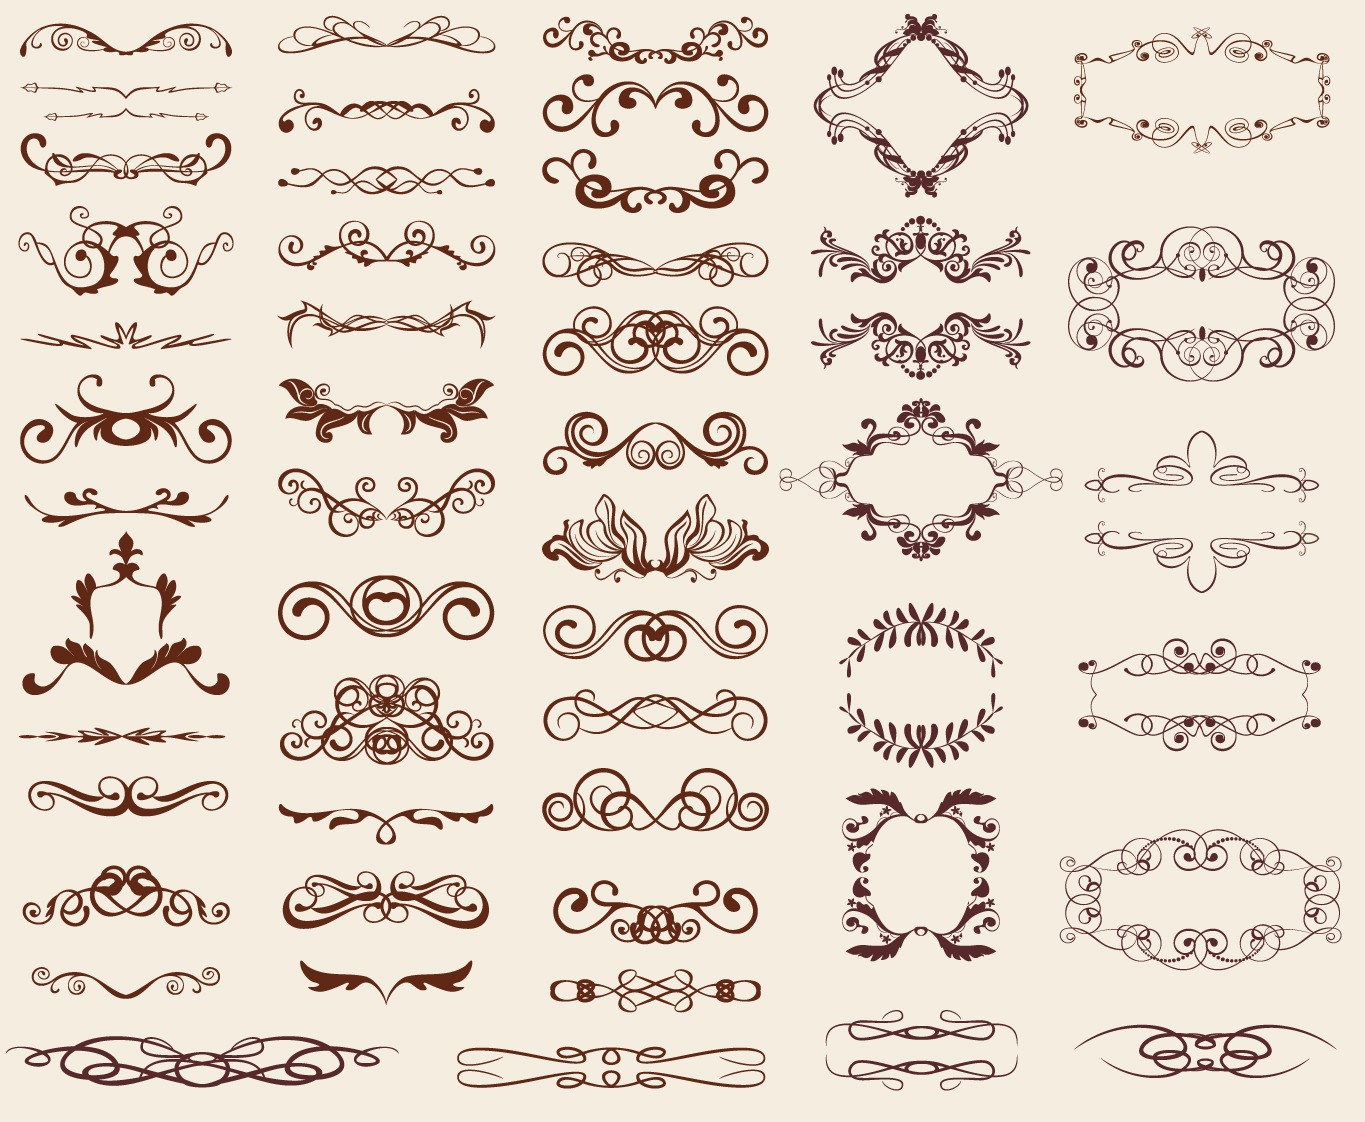 Free Vintage Vector Design Elements